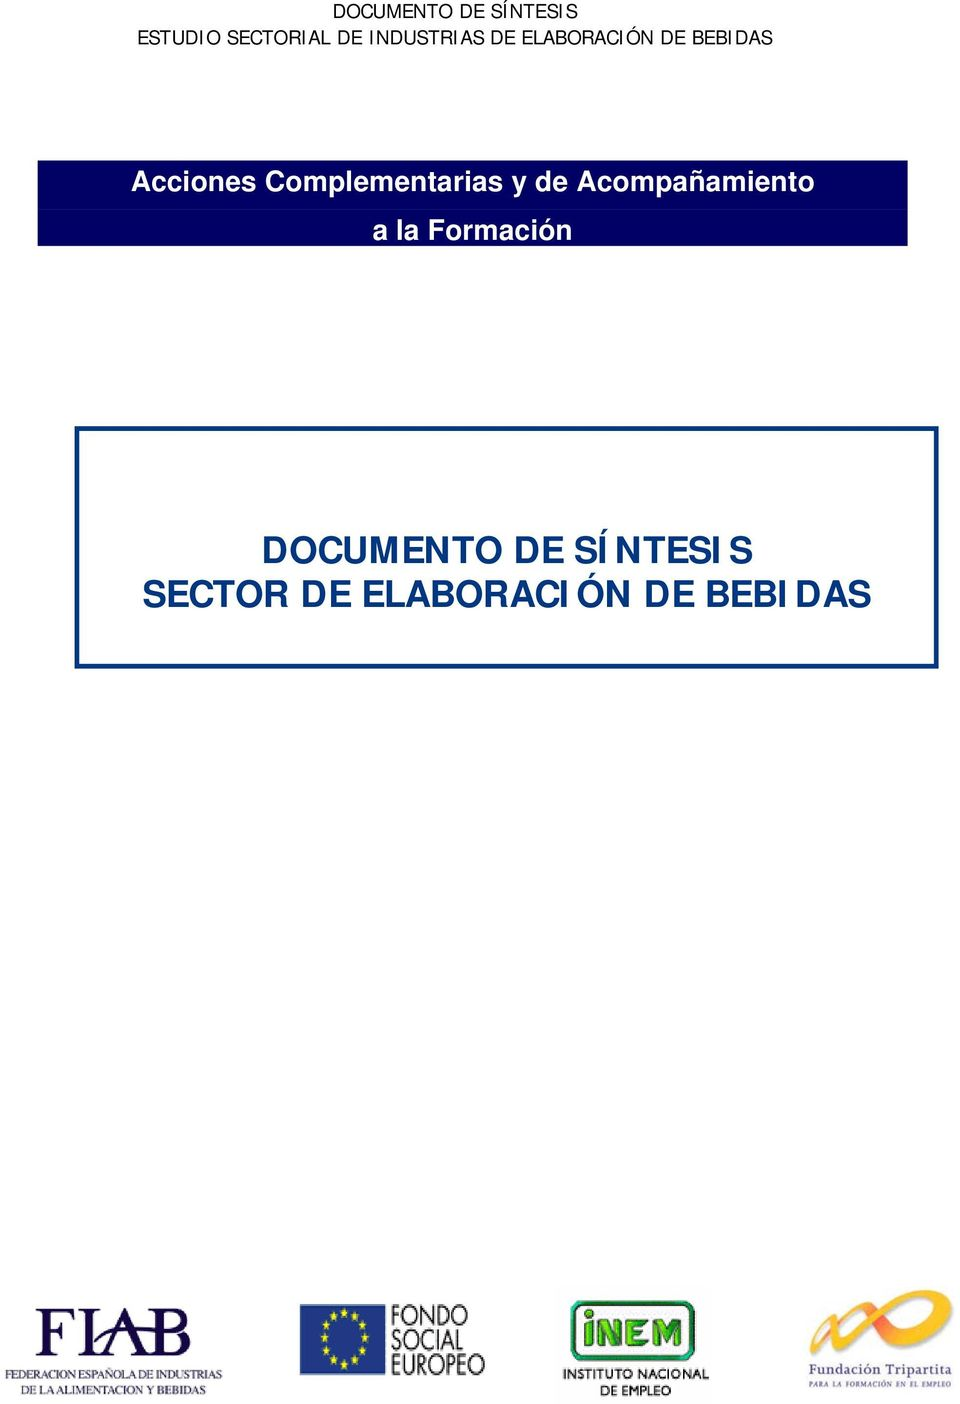 DOCUMENTO DE SÍNTESIS SECTOR DE